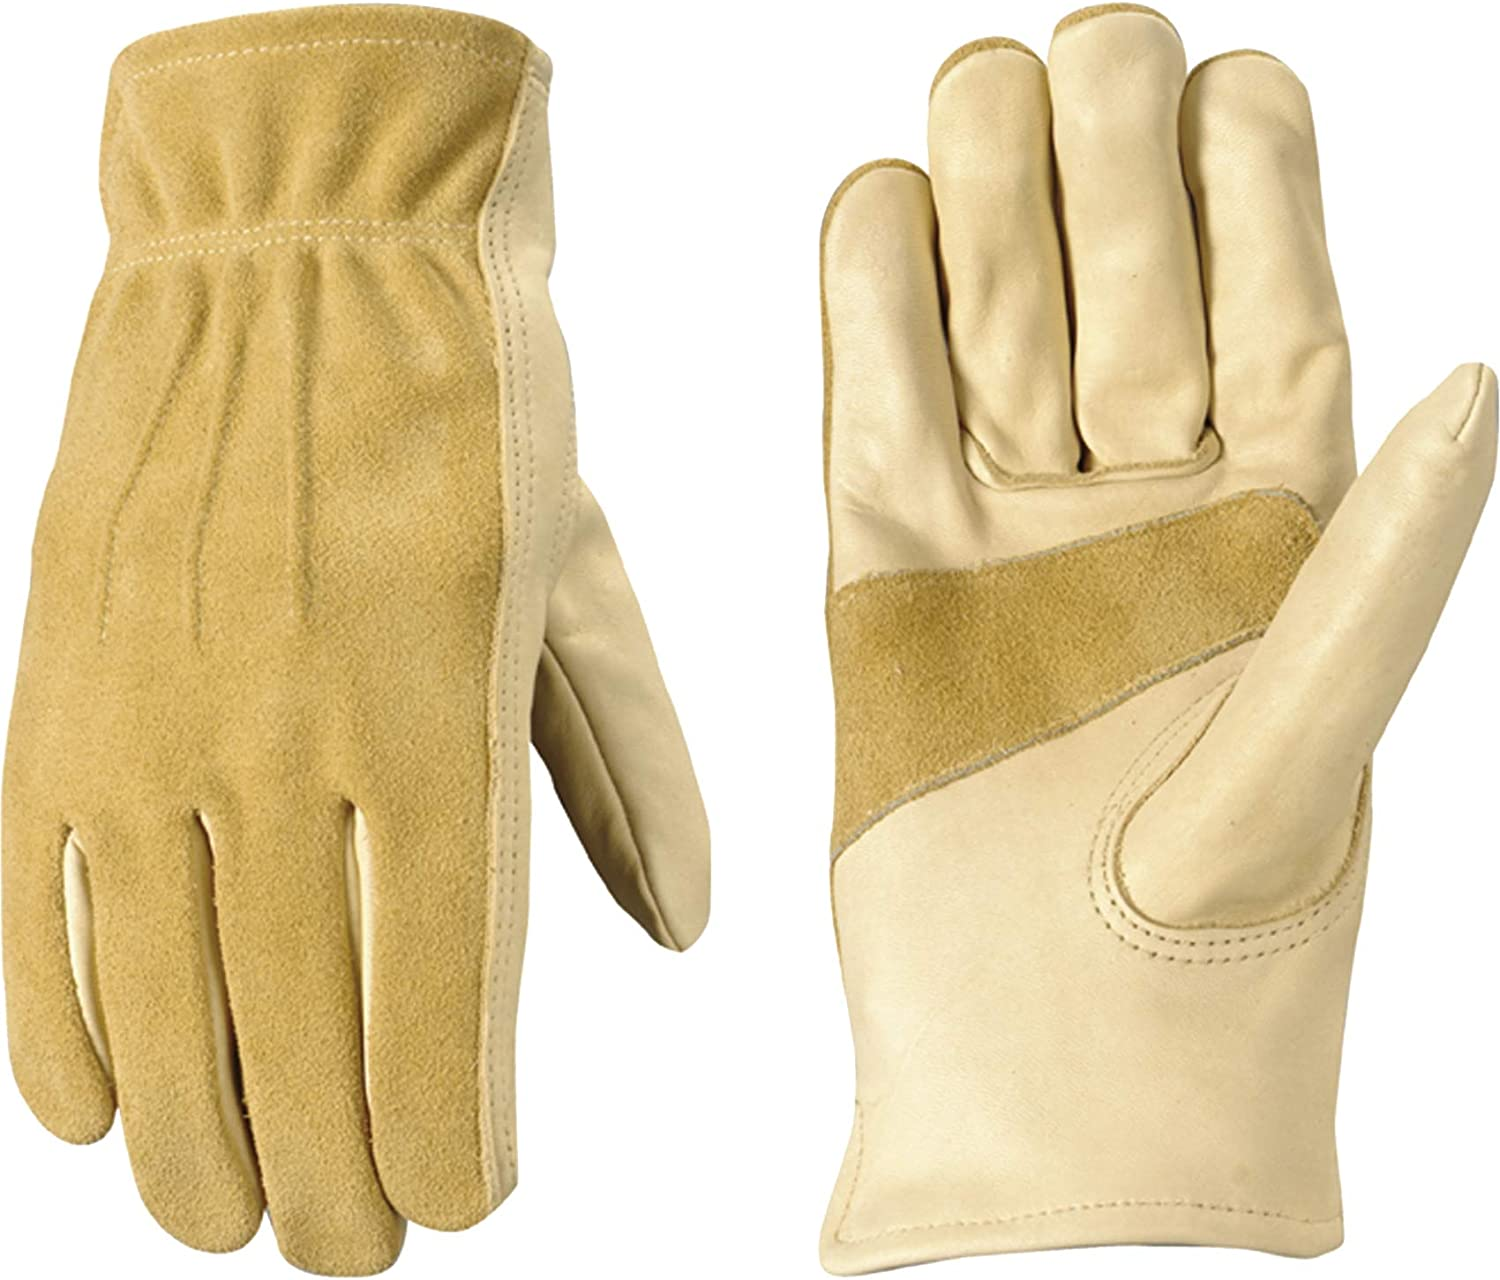 Women's Leather Work and security High material Garden Gloves Duty Cowhide Heavy Grain